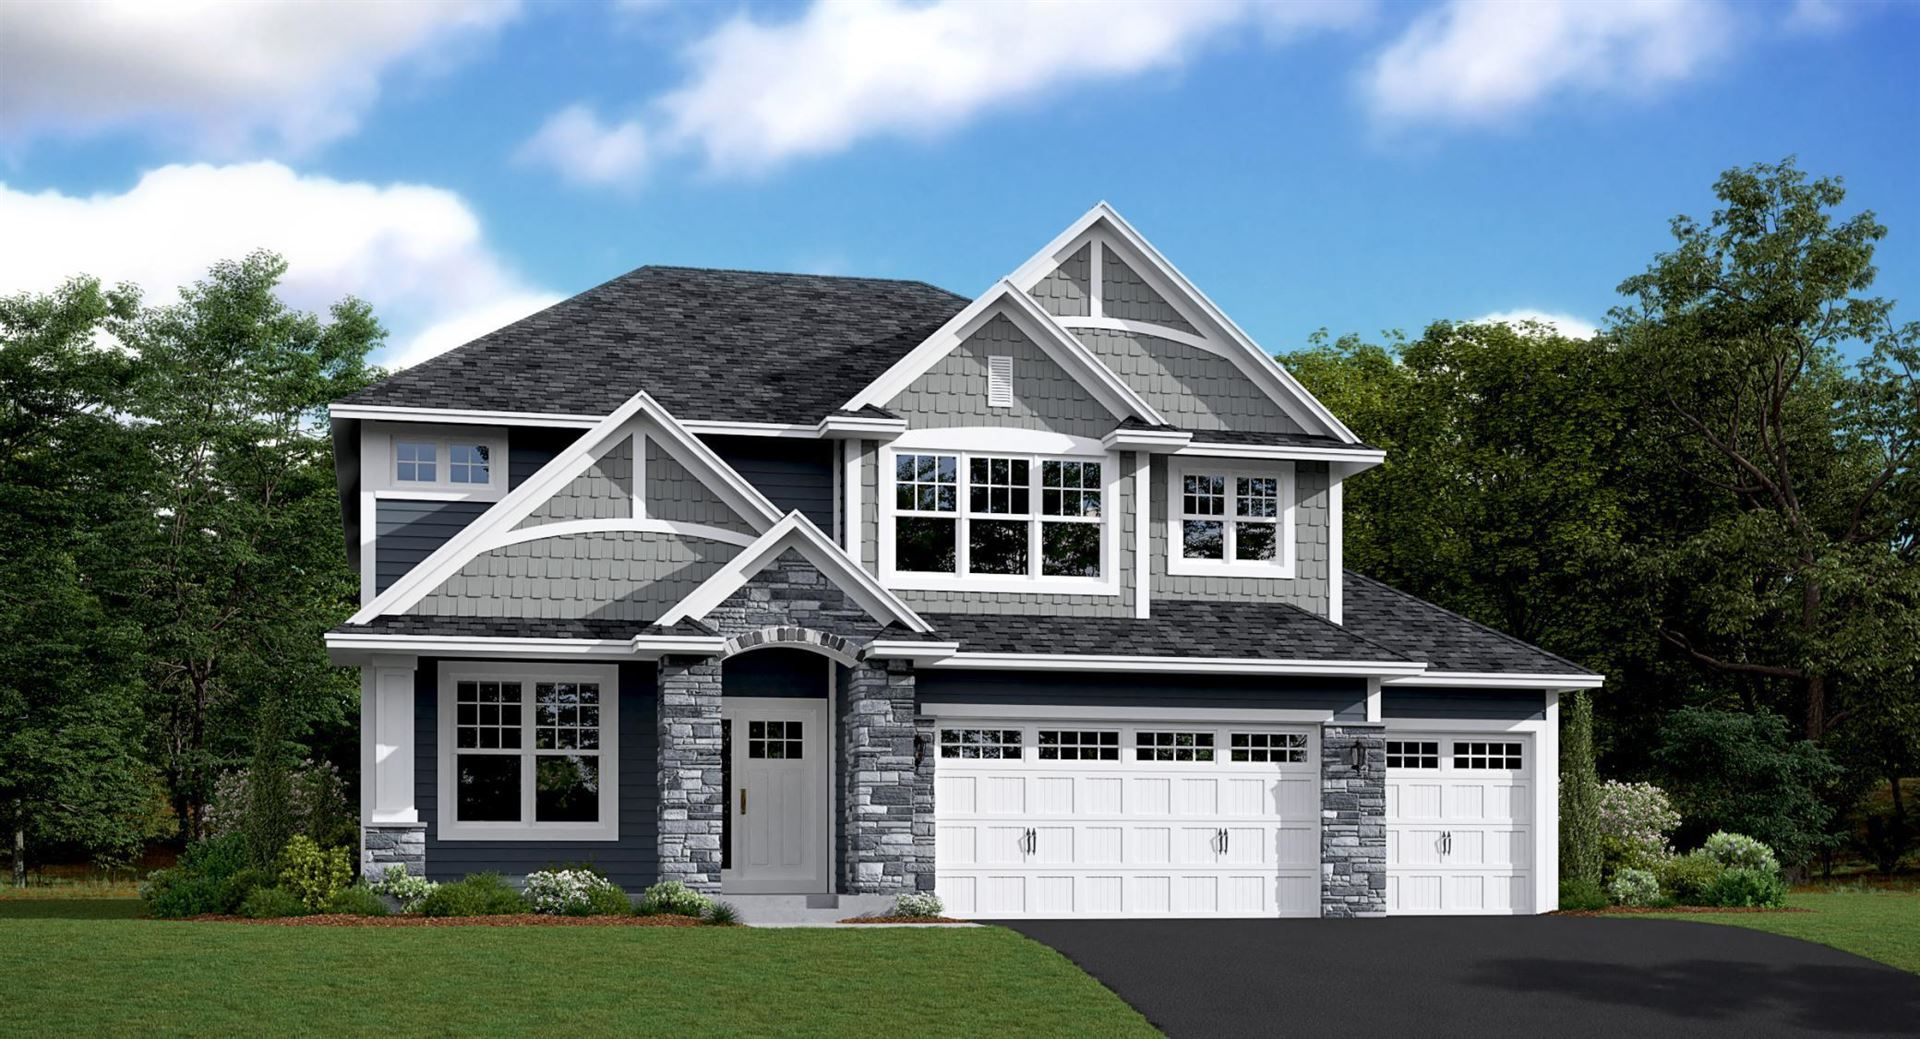 Photo of 18665 Harcourt Path, Lakeville, MN 55044 (MLS # 5758567)